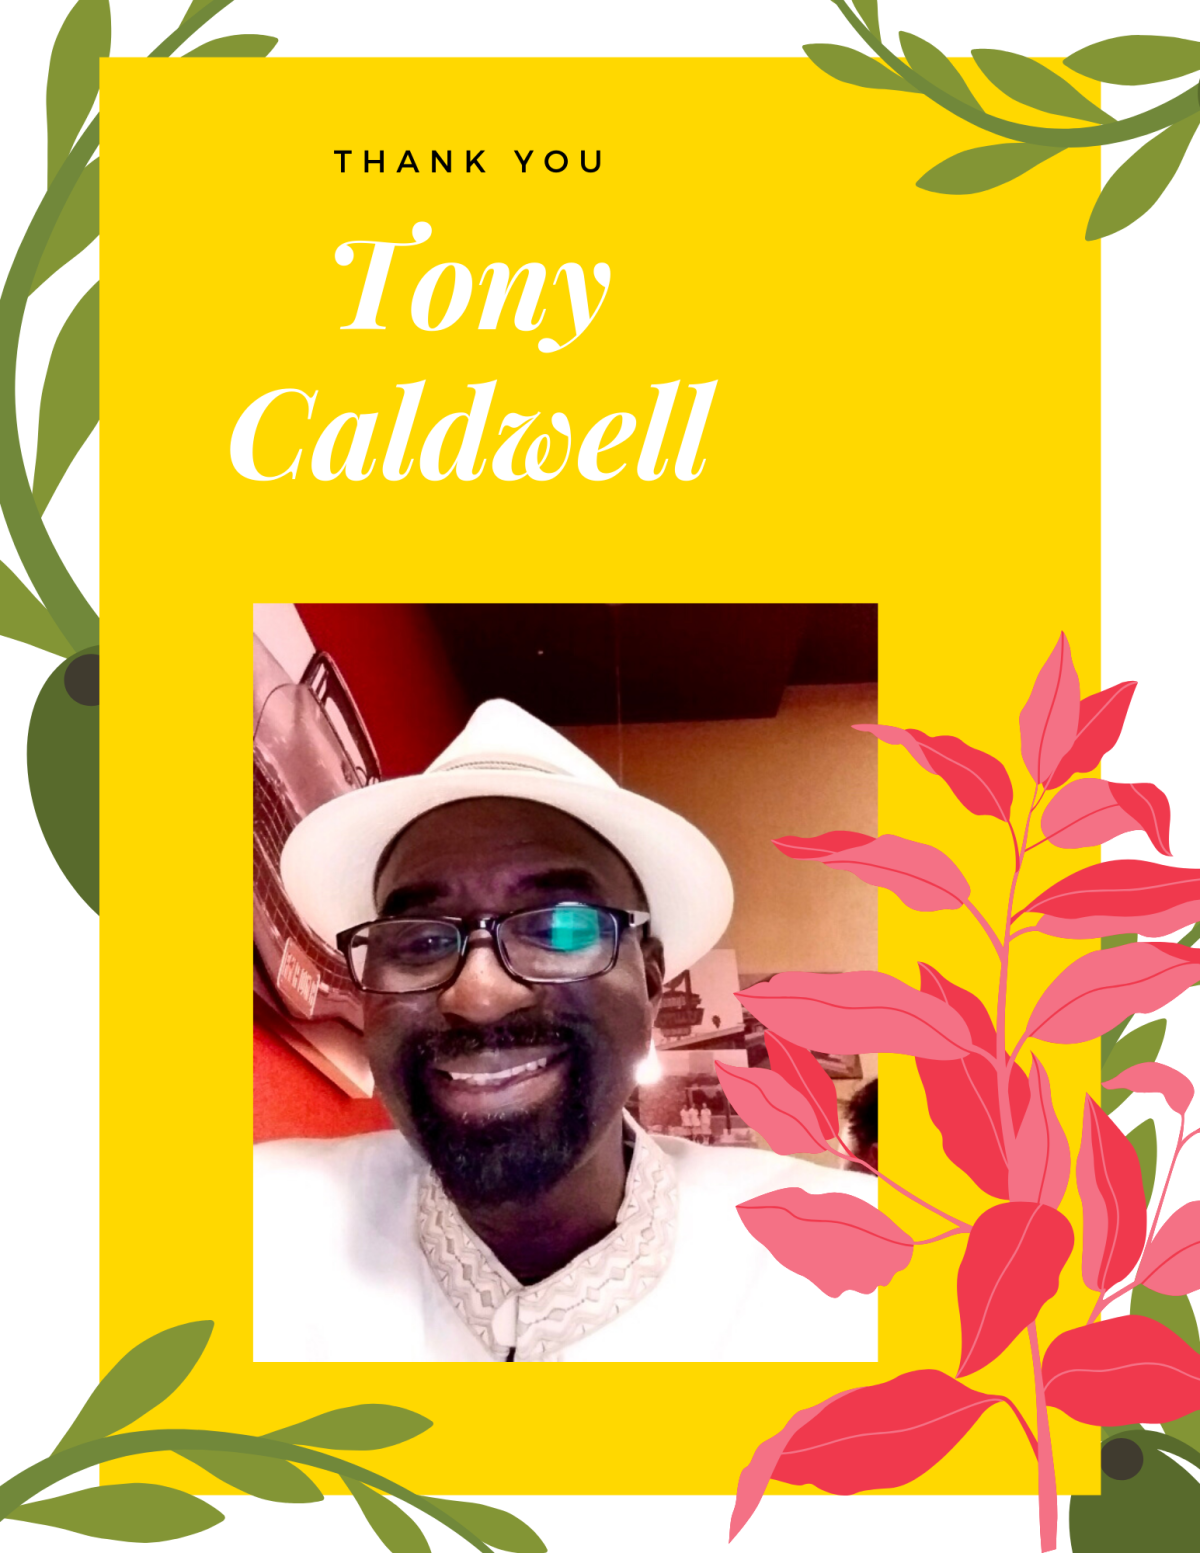 Thank You Tony Caldwell!